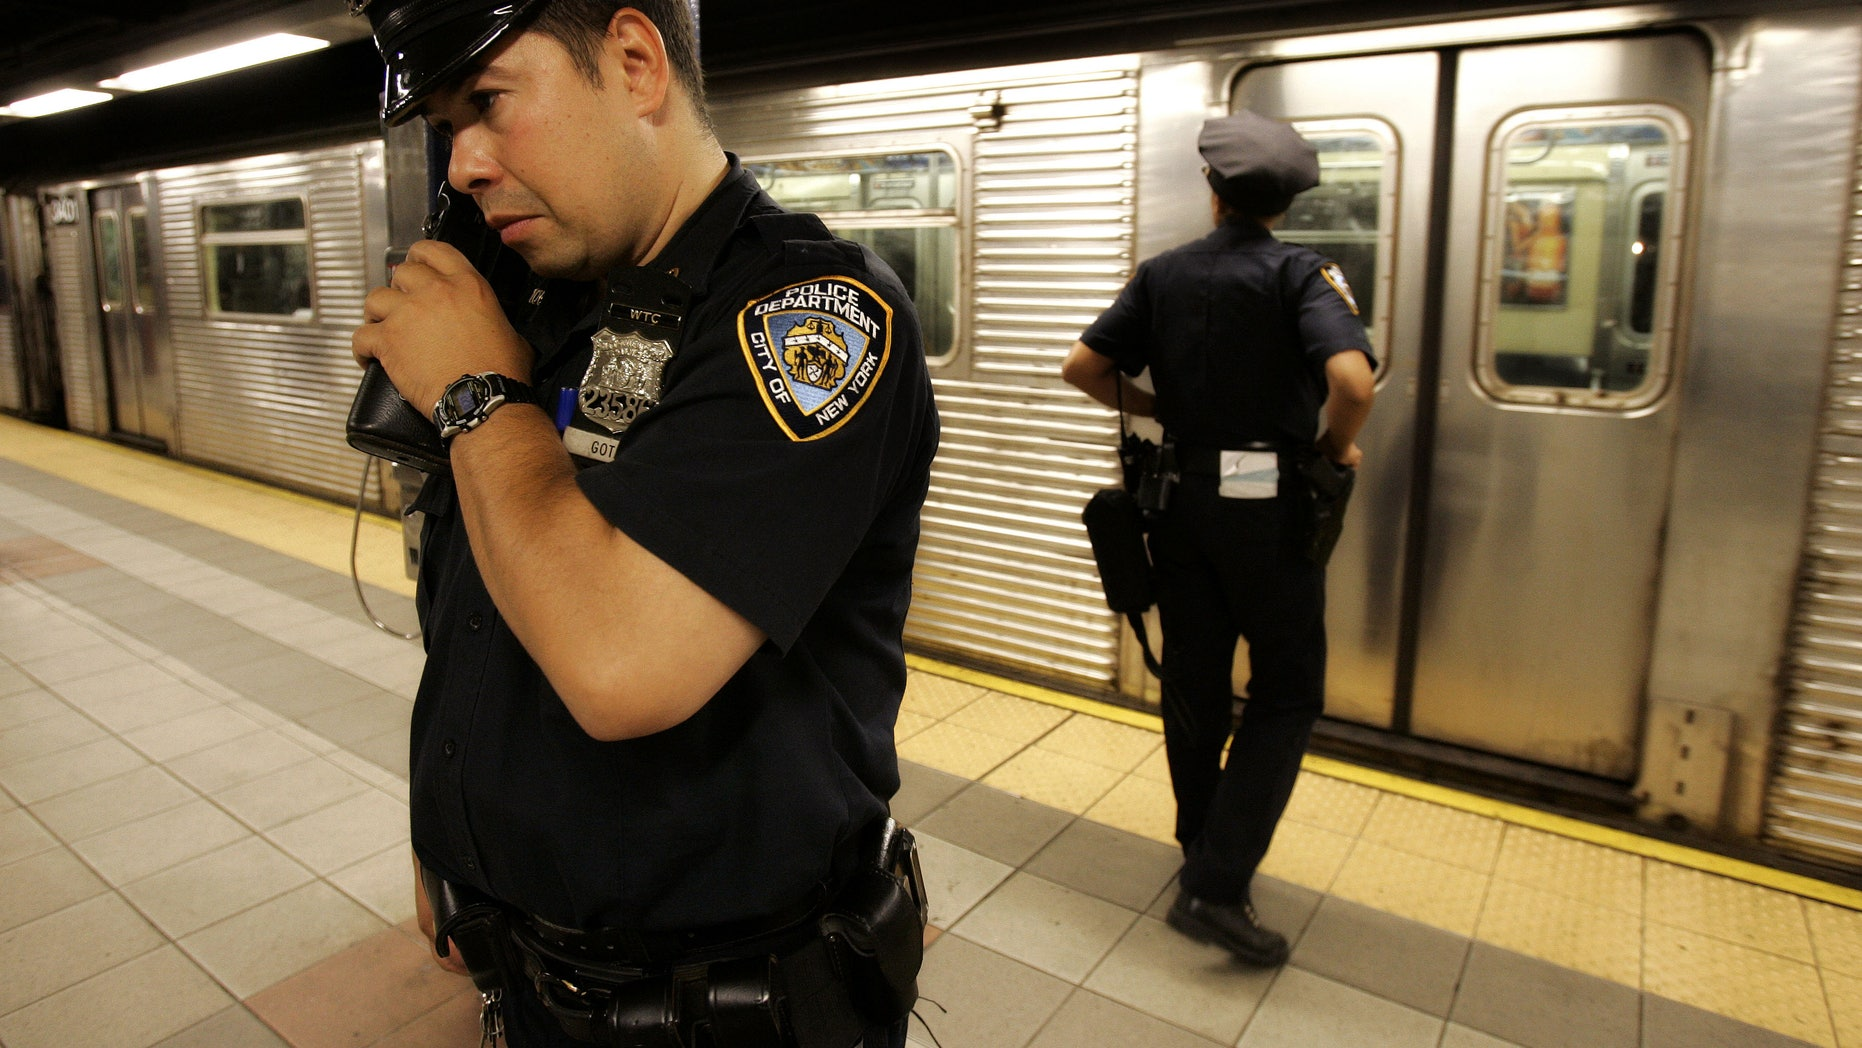 July 8, 2005: New York police officer Frank Gotay listens to a message on his radio as his partner, Yolanda Cortes, waits for a subway car's doors to open while performing random checks along the platform at the 42nd Street station in New York. A decade after the Sept. 11 terror attacks, New York City emergency agencies are better trained and better equipped to communicate in a disaster, but first responders in cities around the country say the progress is not good enough.